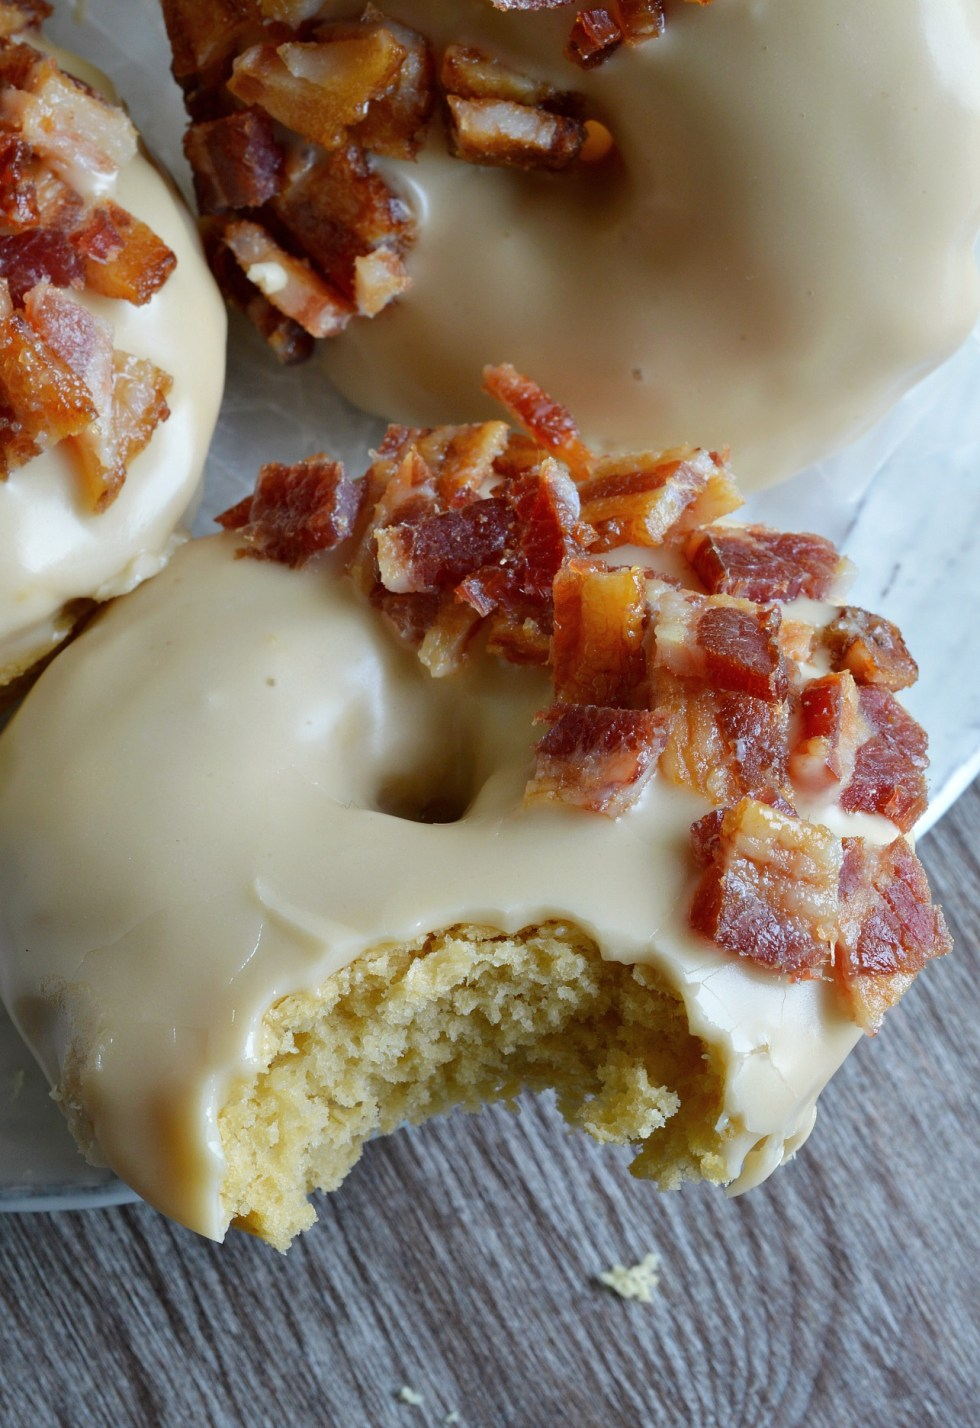 These Maple Bacon Donuts have to be one of the best flavor combinations ever! Brown sugar and sour cream baked donuts with a pure maple syrup glaze then topped with brown sugar maple glazed bacon pieces. This breakfast recipe is the ultimate morning indulgence and perfection with a cup of coffee!